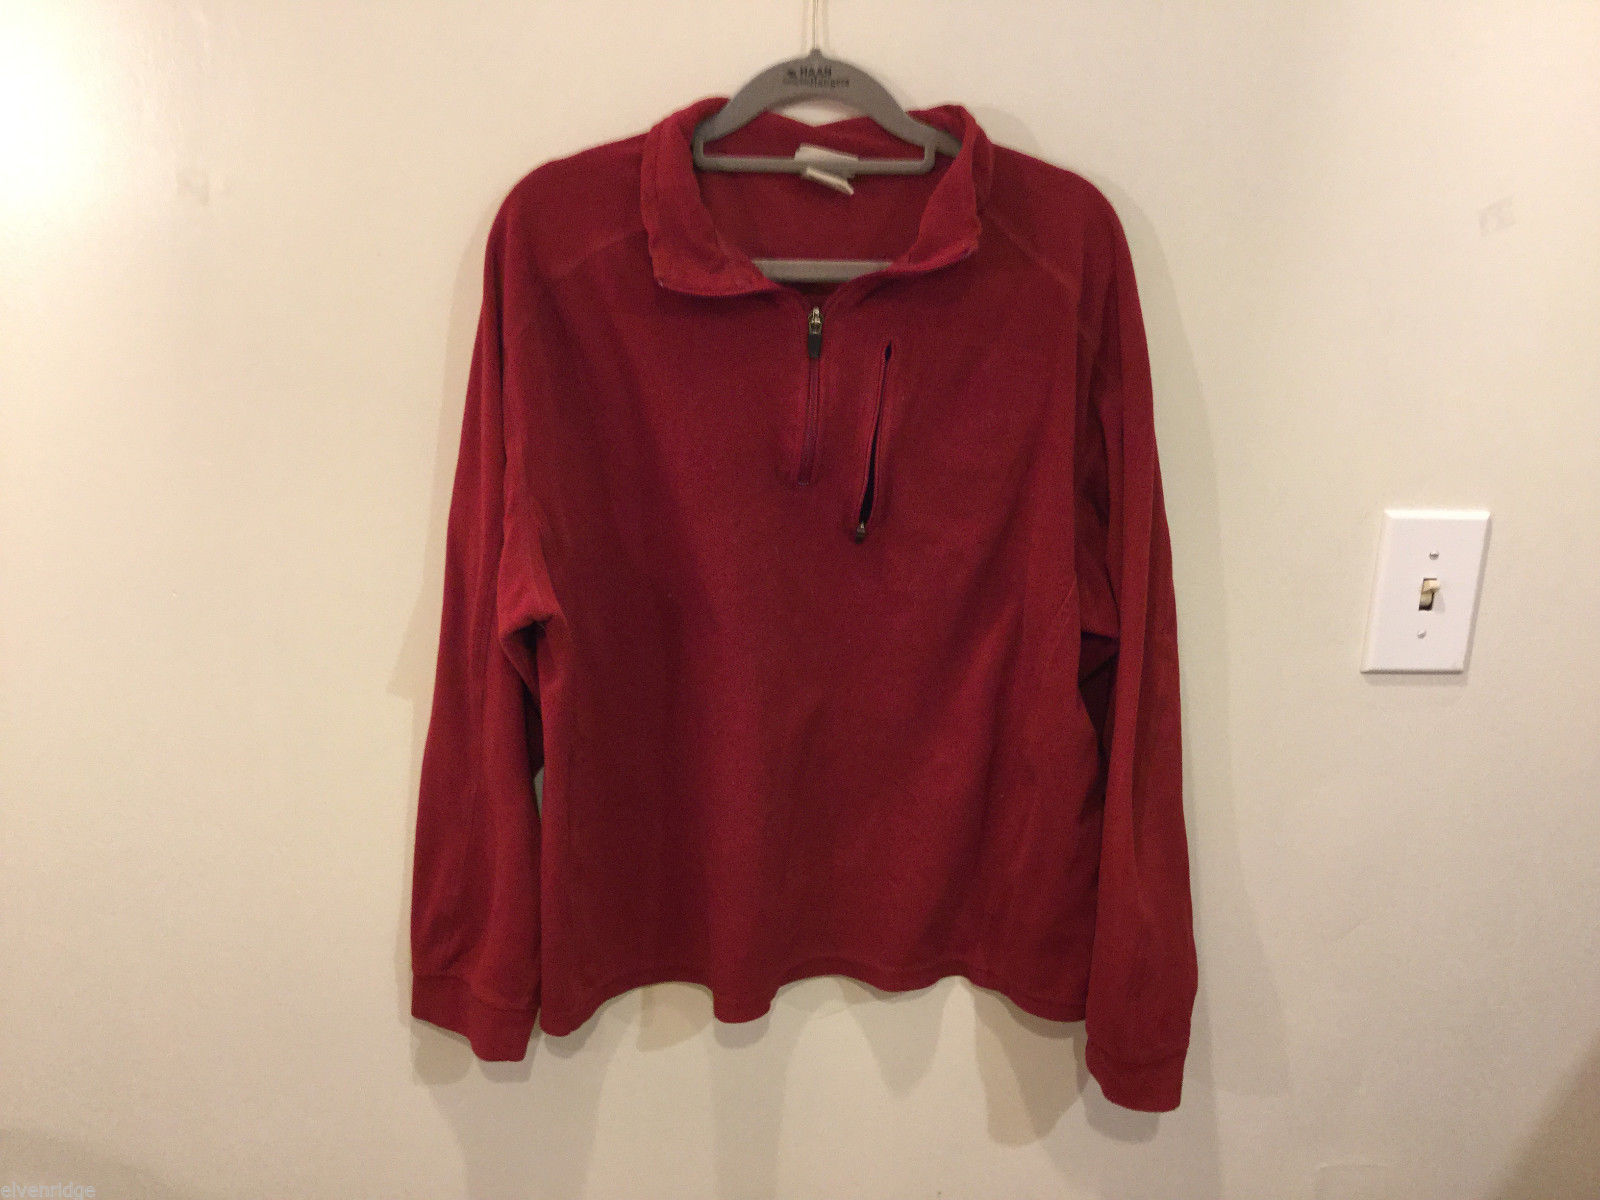 L.L.Bean Mens Fleece Red Sweater 100% polyester Zip up collar, size L